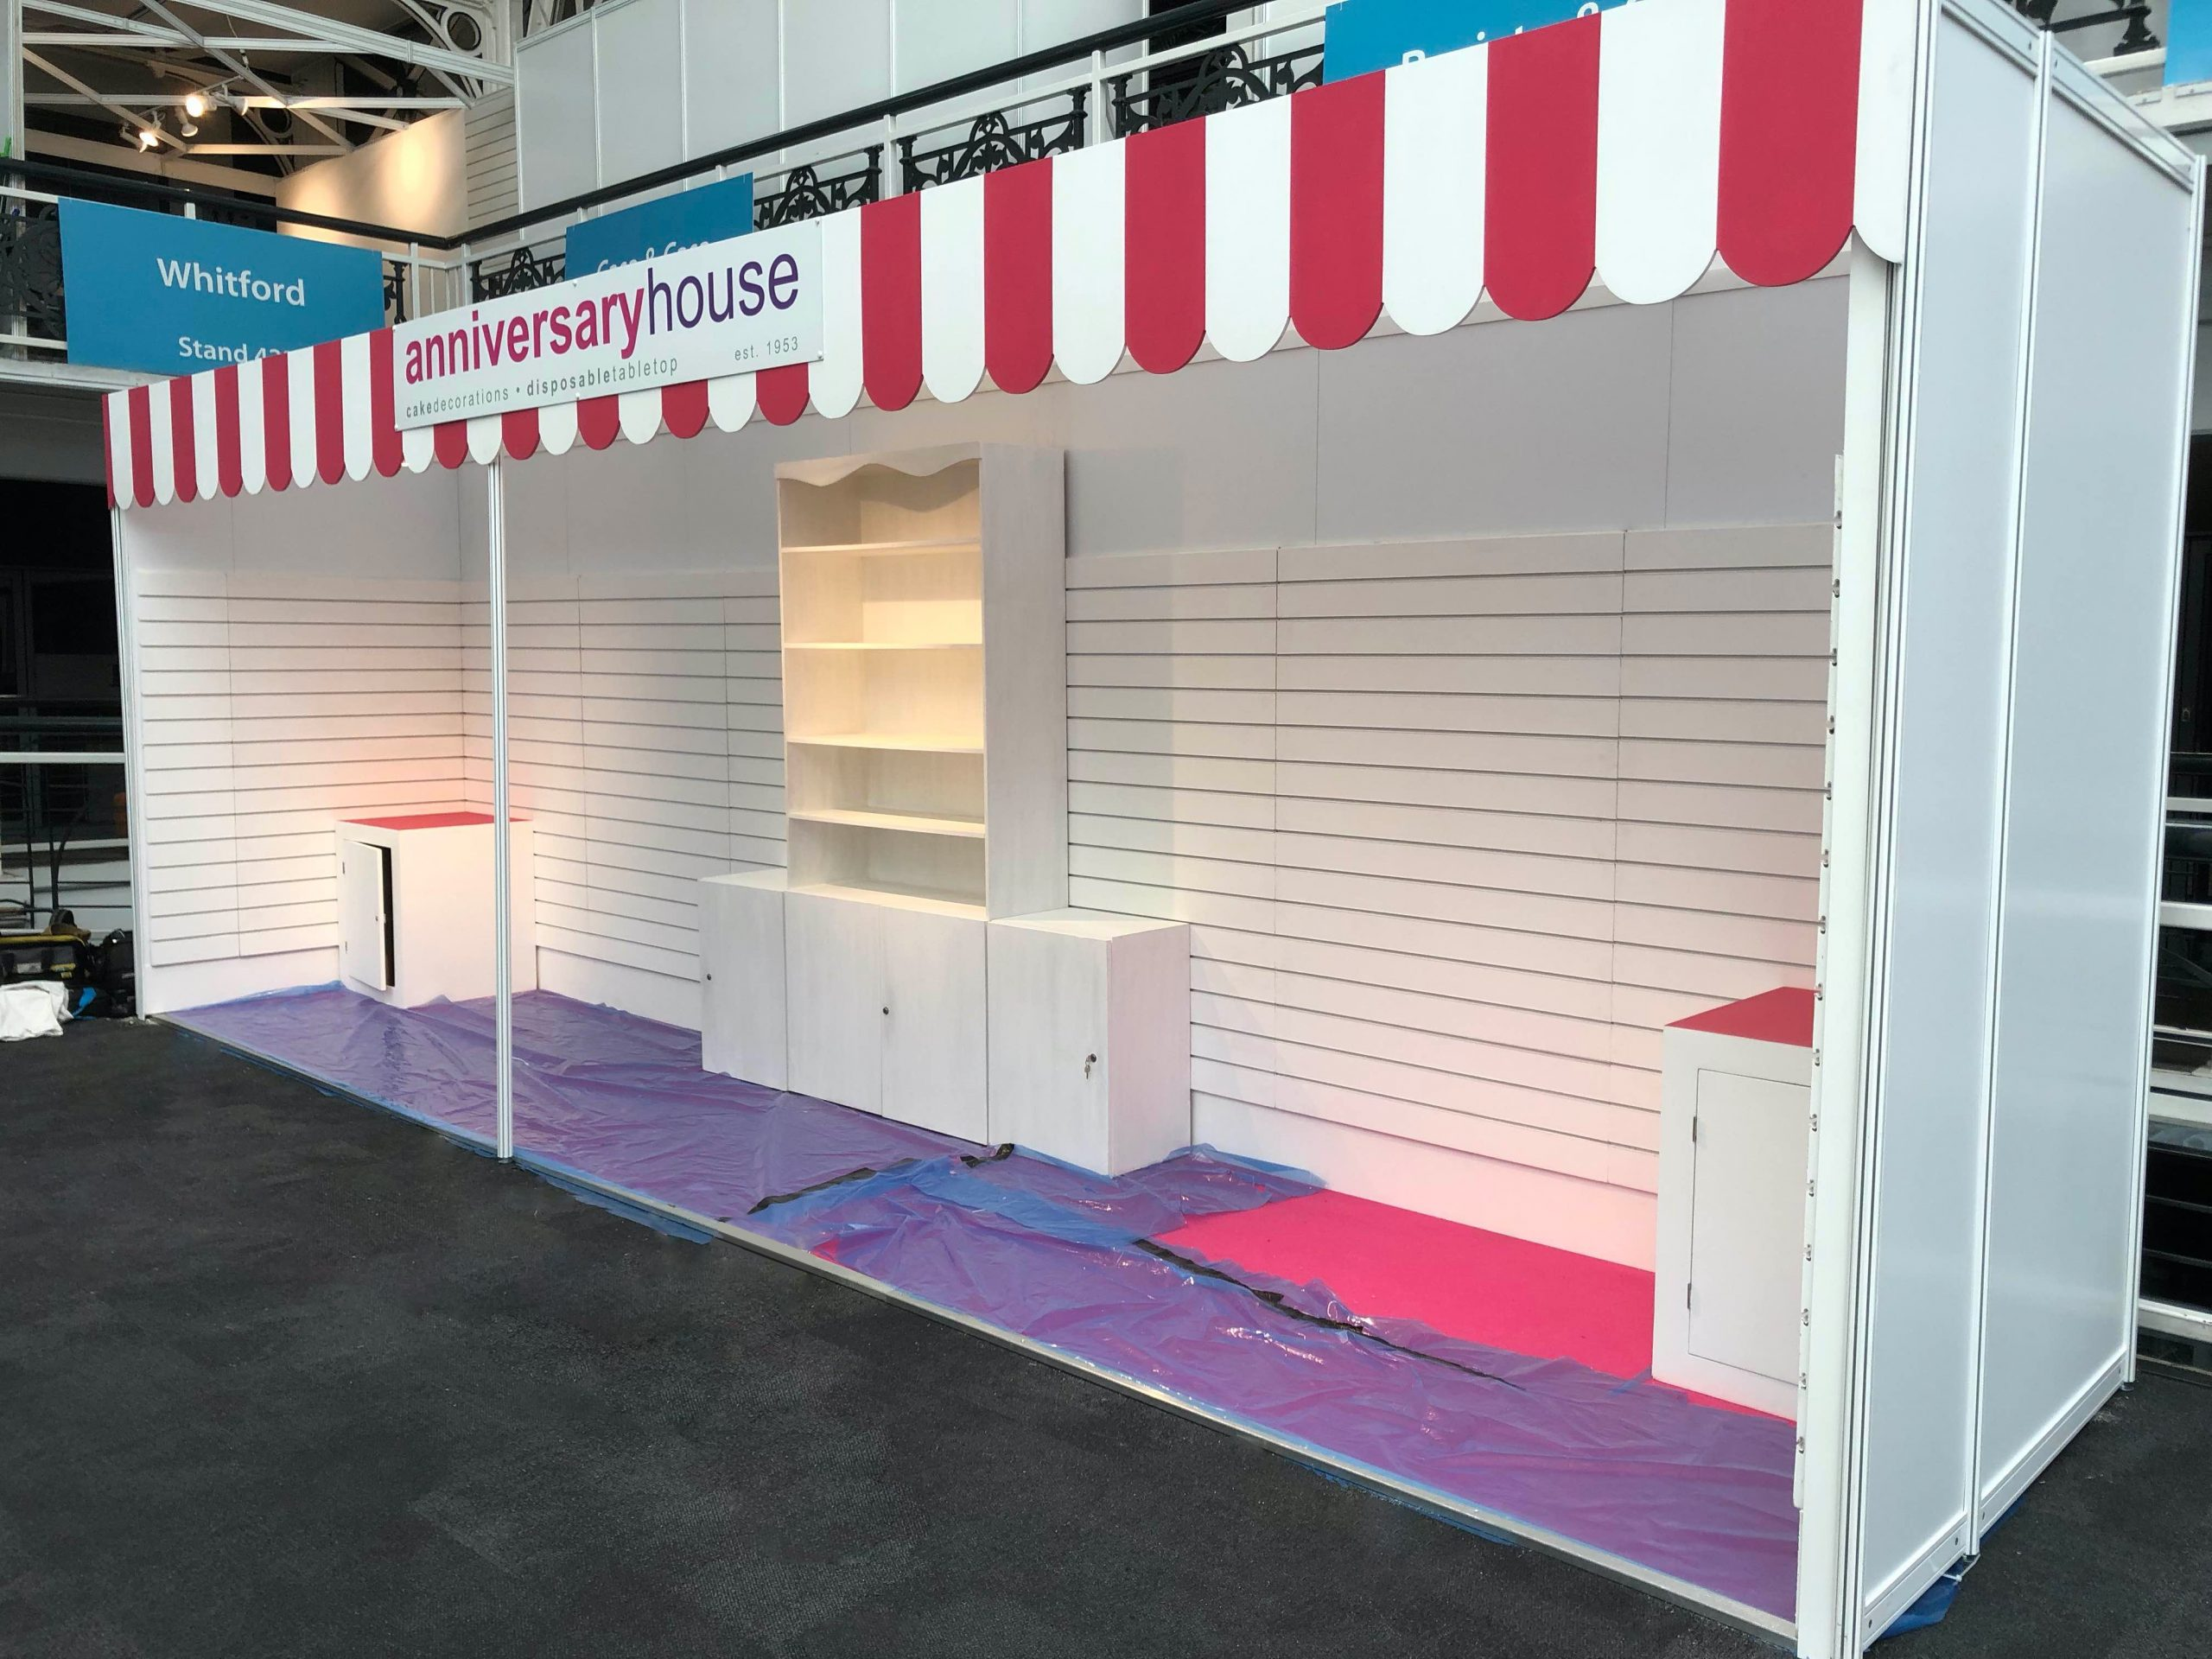 Exhibition Stand Design for Anniversary House – PEM Exhibition Services